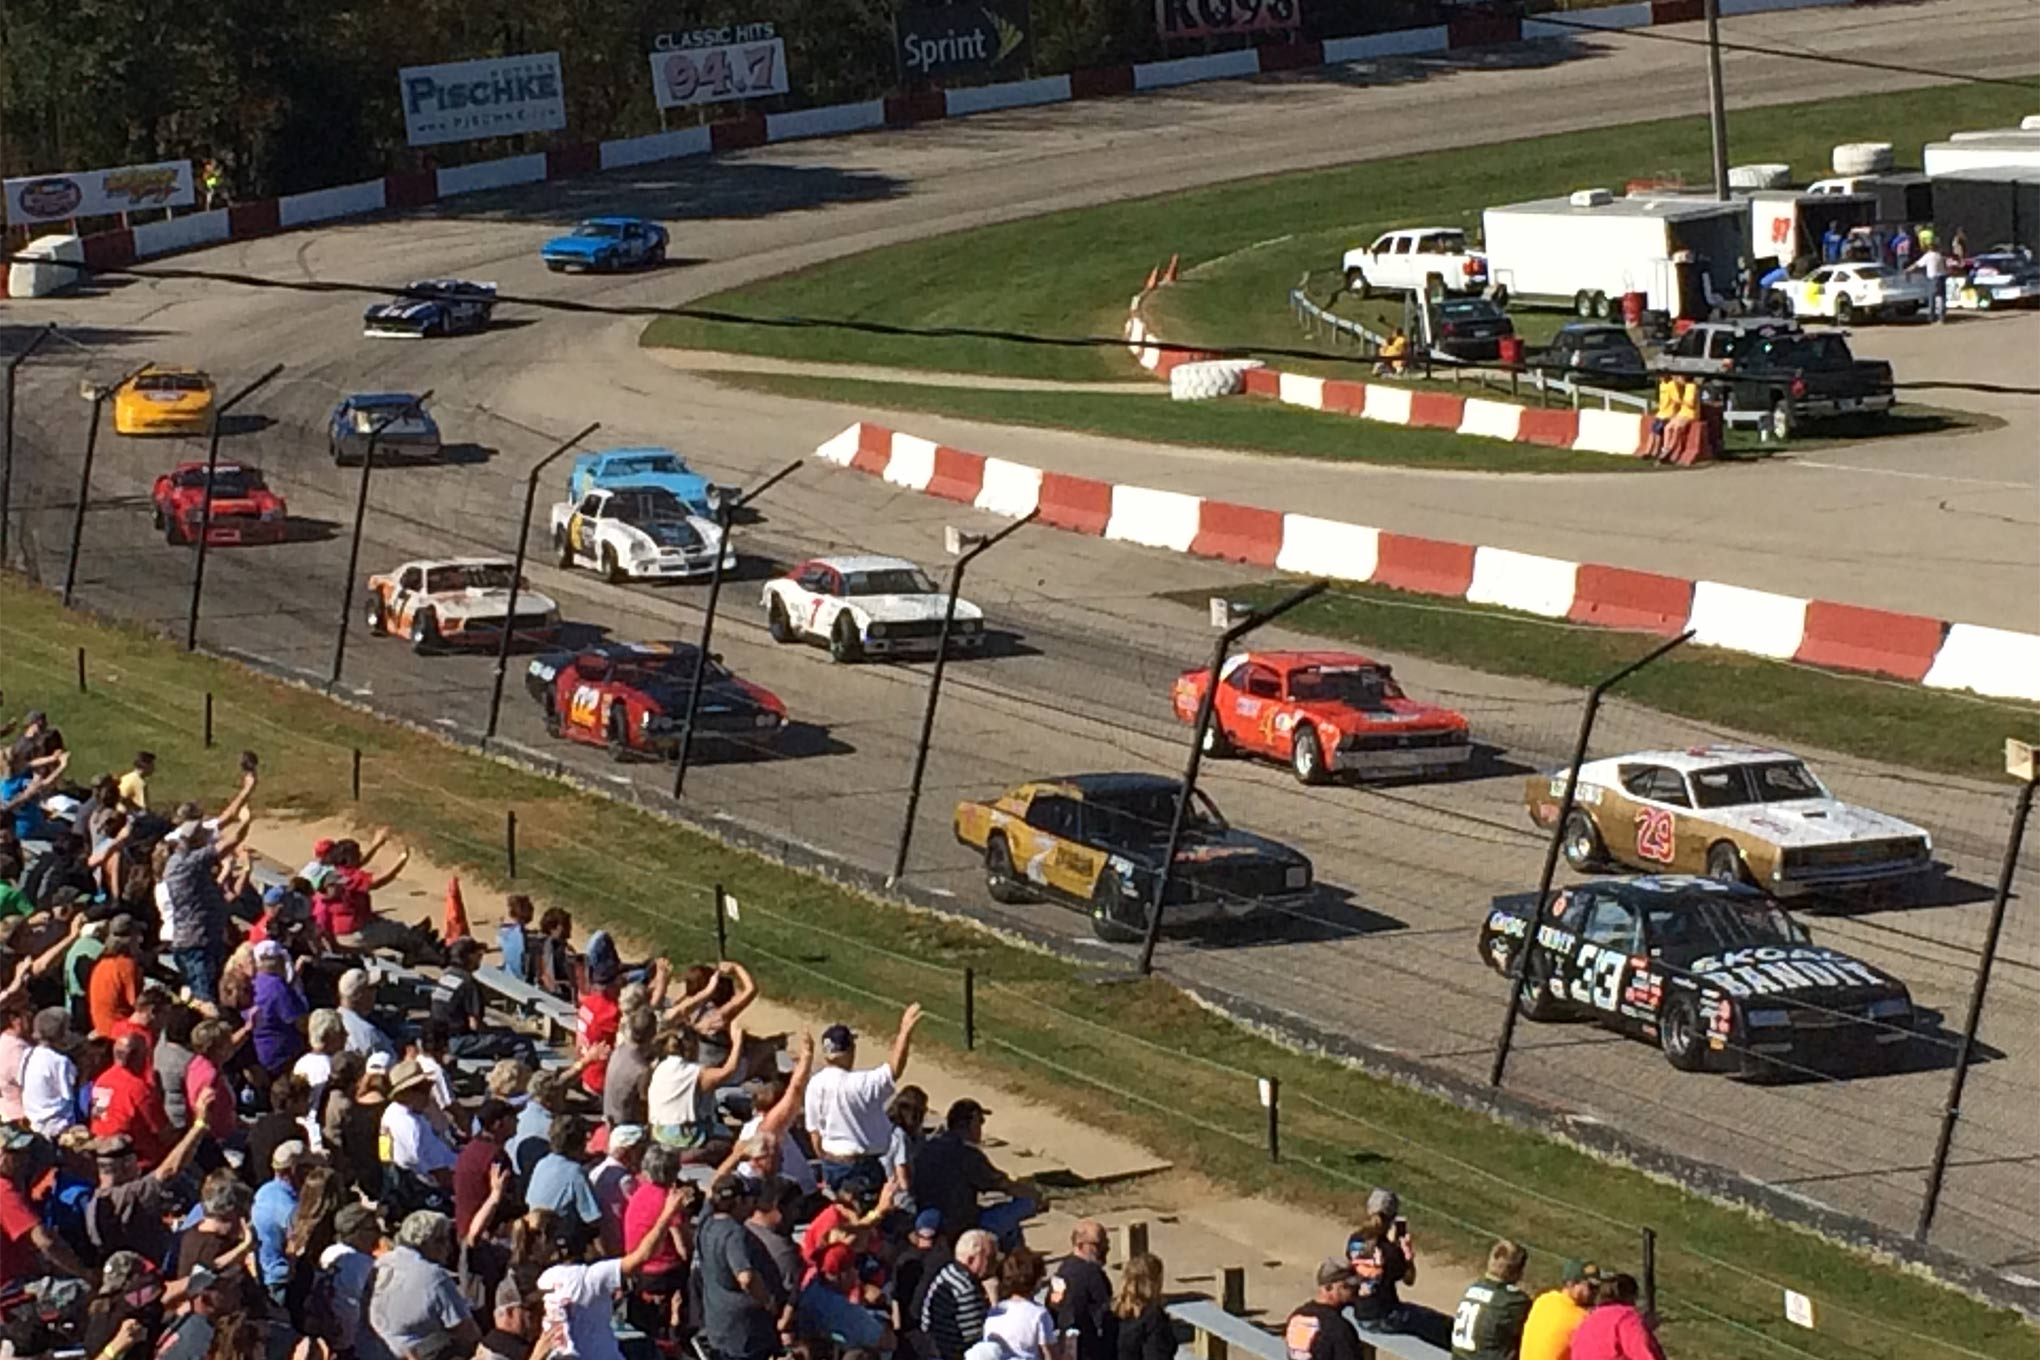 Fans at LaCrosse salute the Vintage racers before the Oktoberfest feature. A total of 23 cars were on hand, one of the best-attended Vintage races in past few seasons in the Midwest.